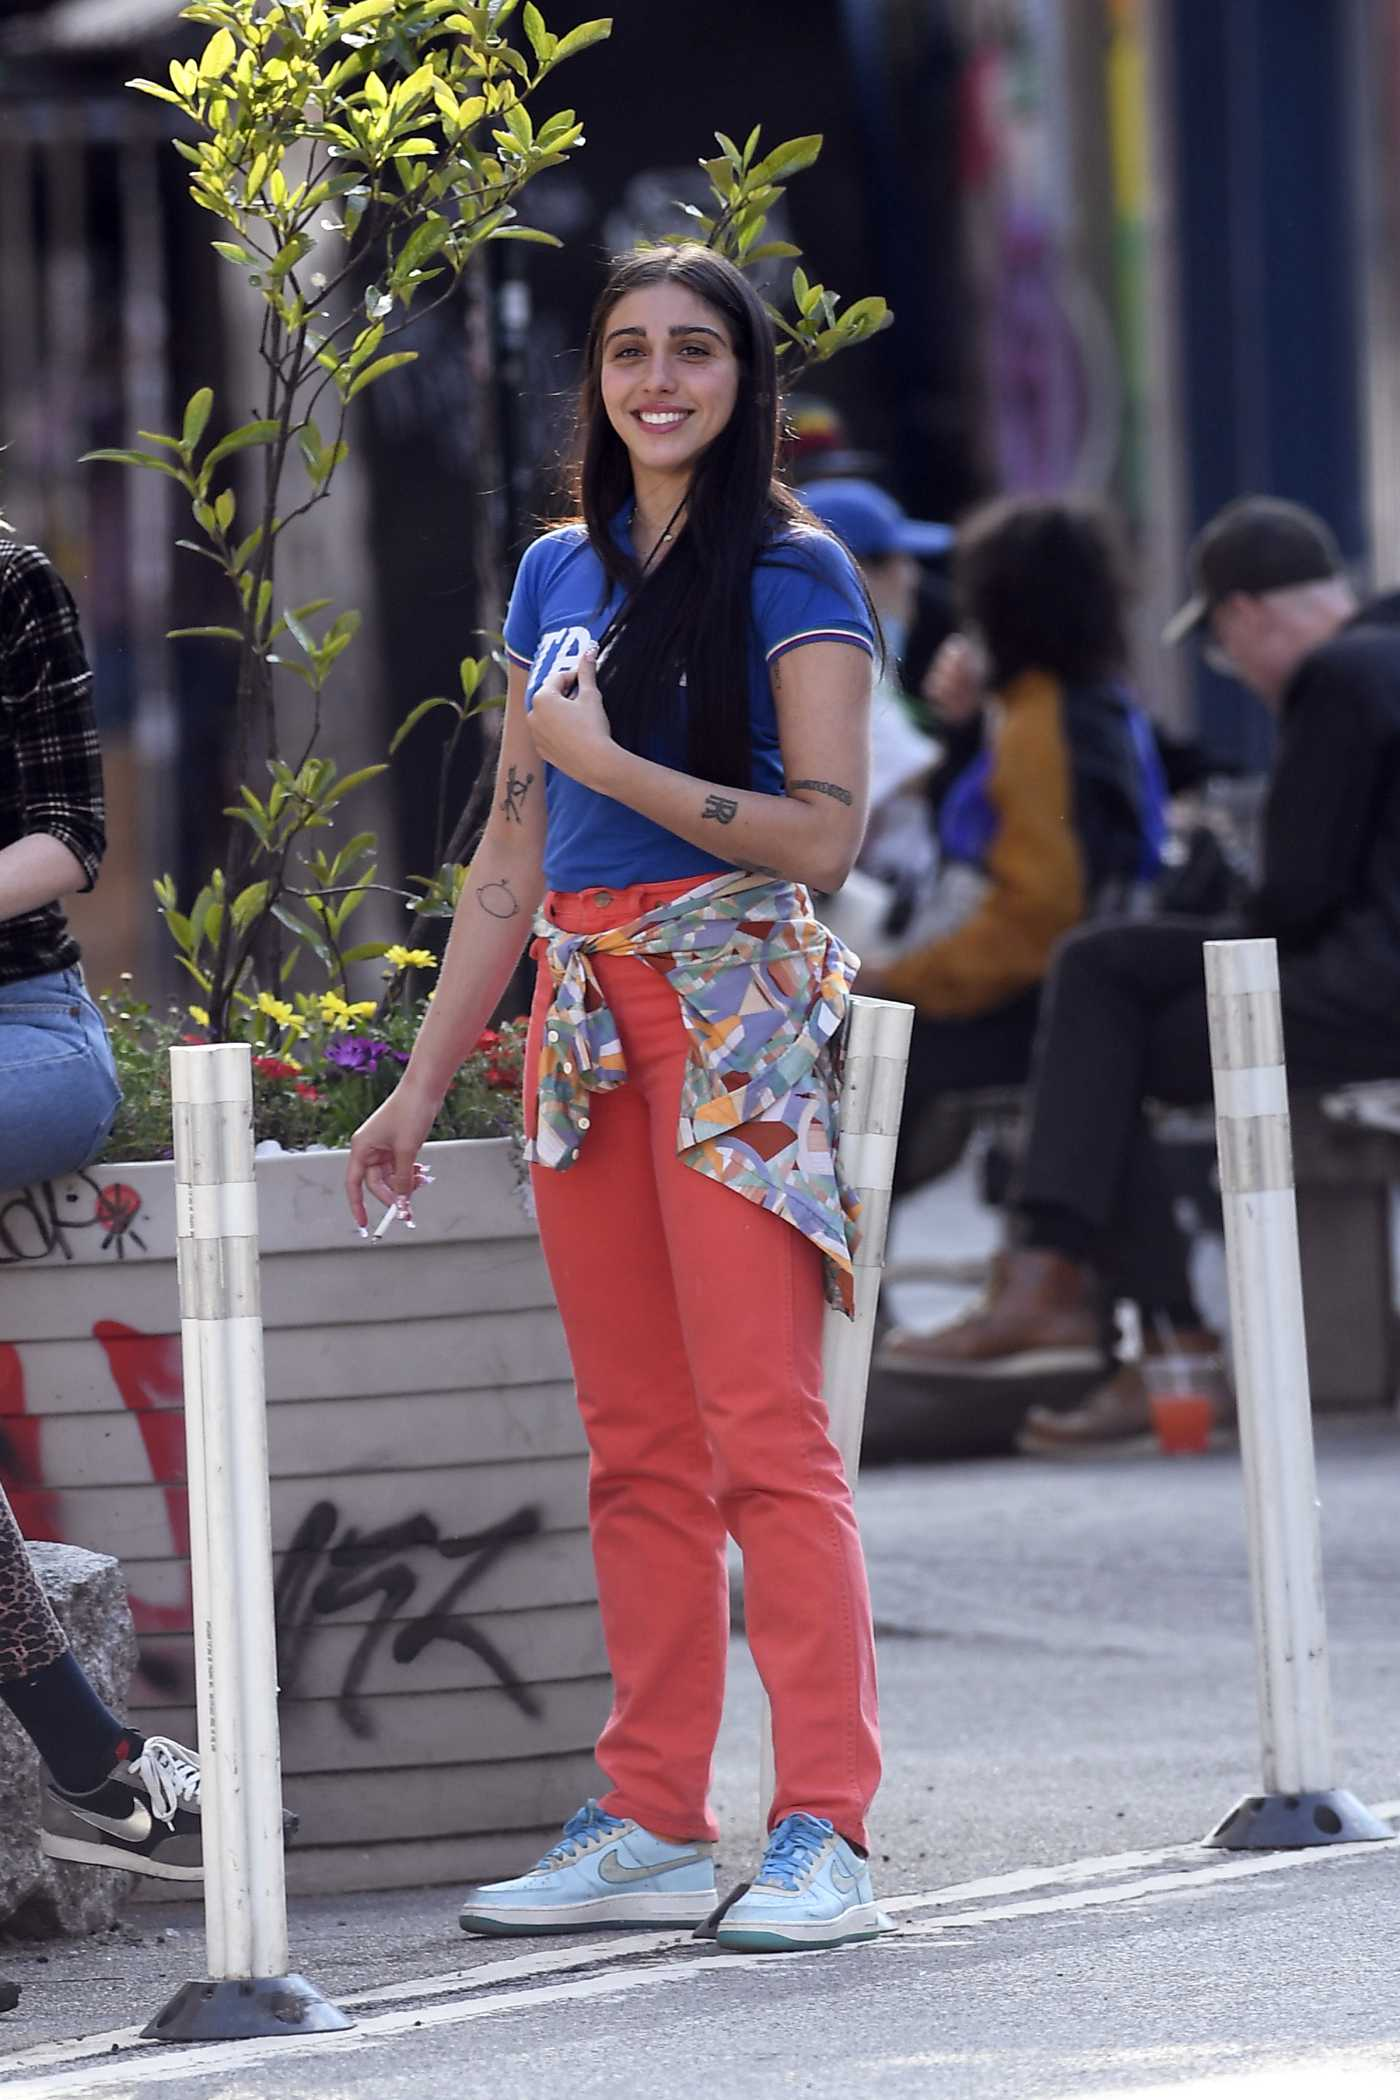 Lourdes Leon in a Red Jeans Was Seen Out with Friends in NYC 05/08/2020